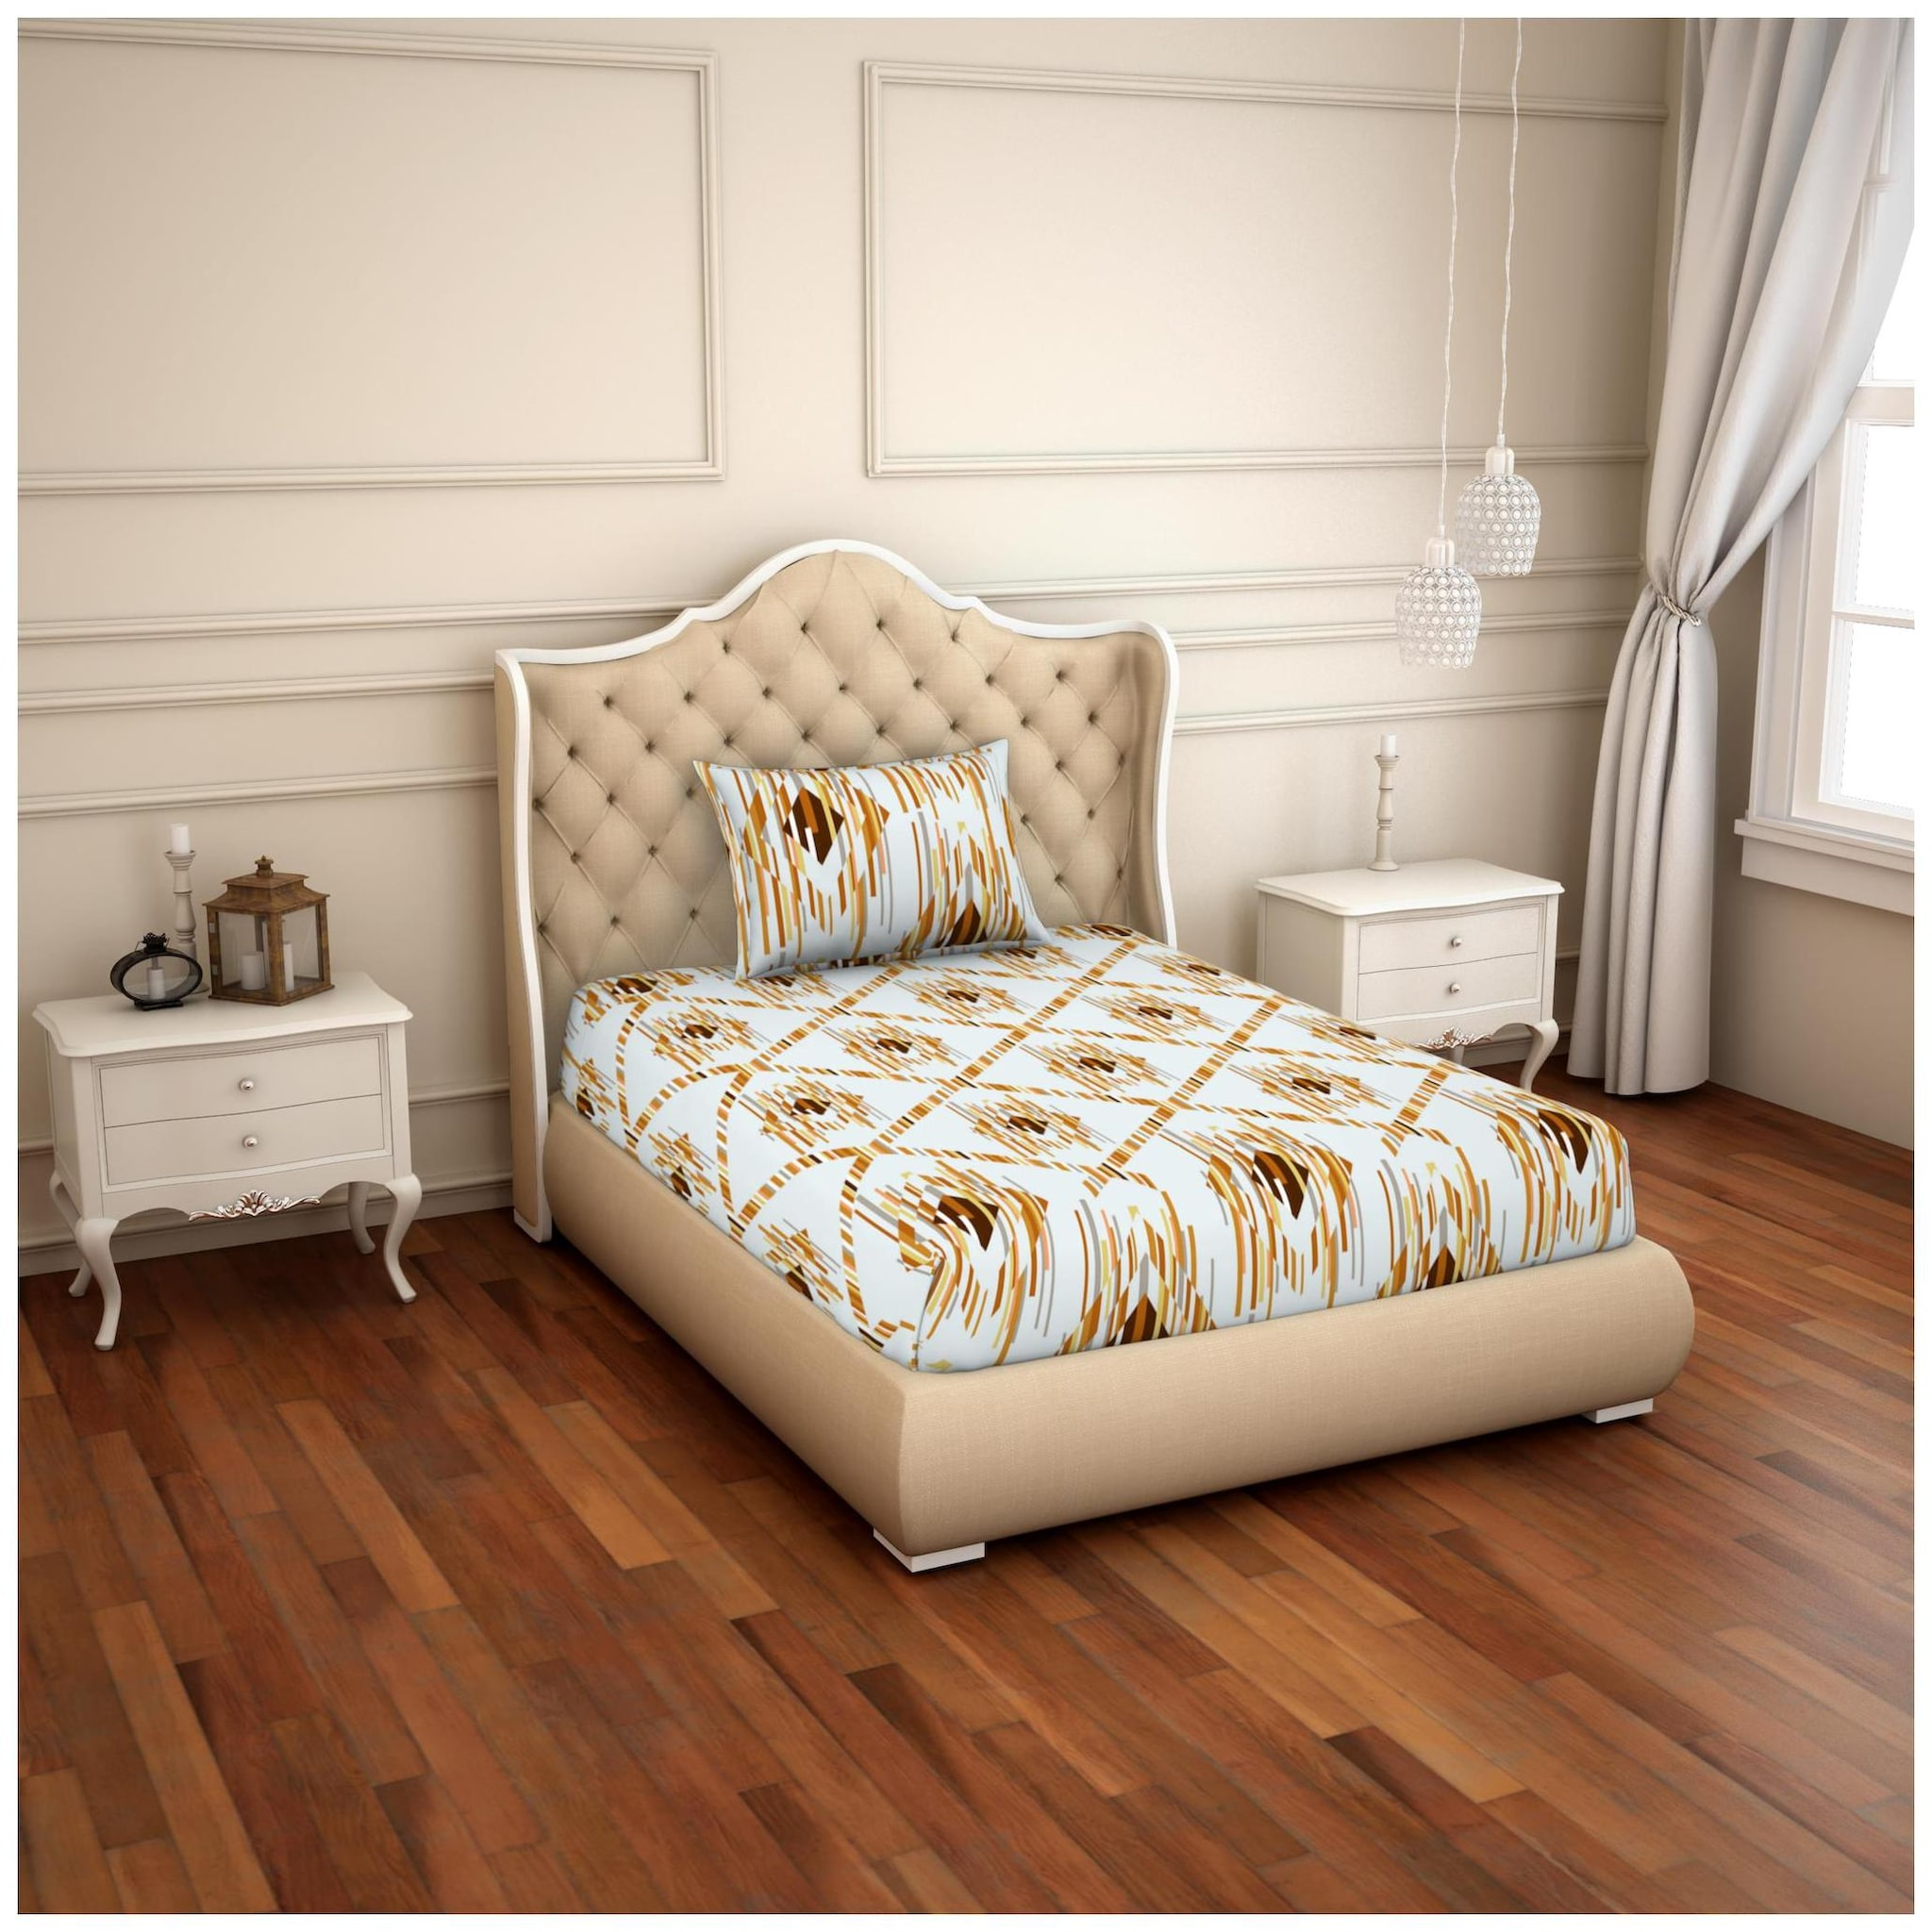 https://assetscdn1.paytm.com/images/catalog/product/H/HO/HOMSPACES-NON-FWELS232885CB83AED/1578915254737_4.jpg